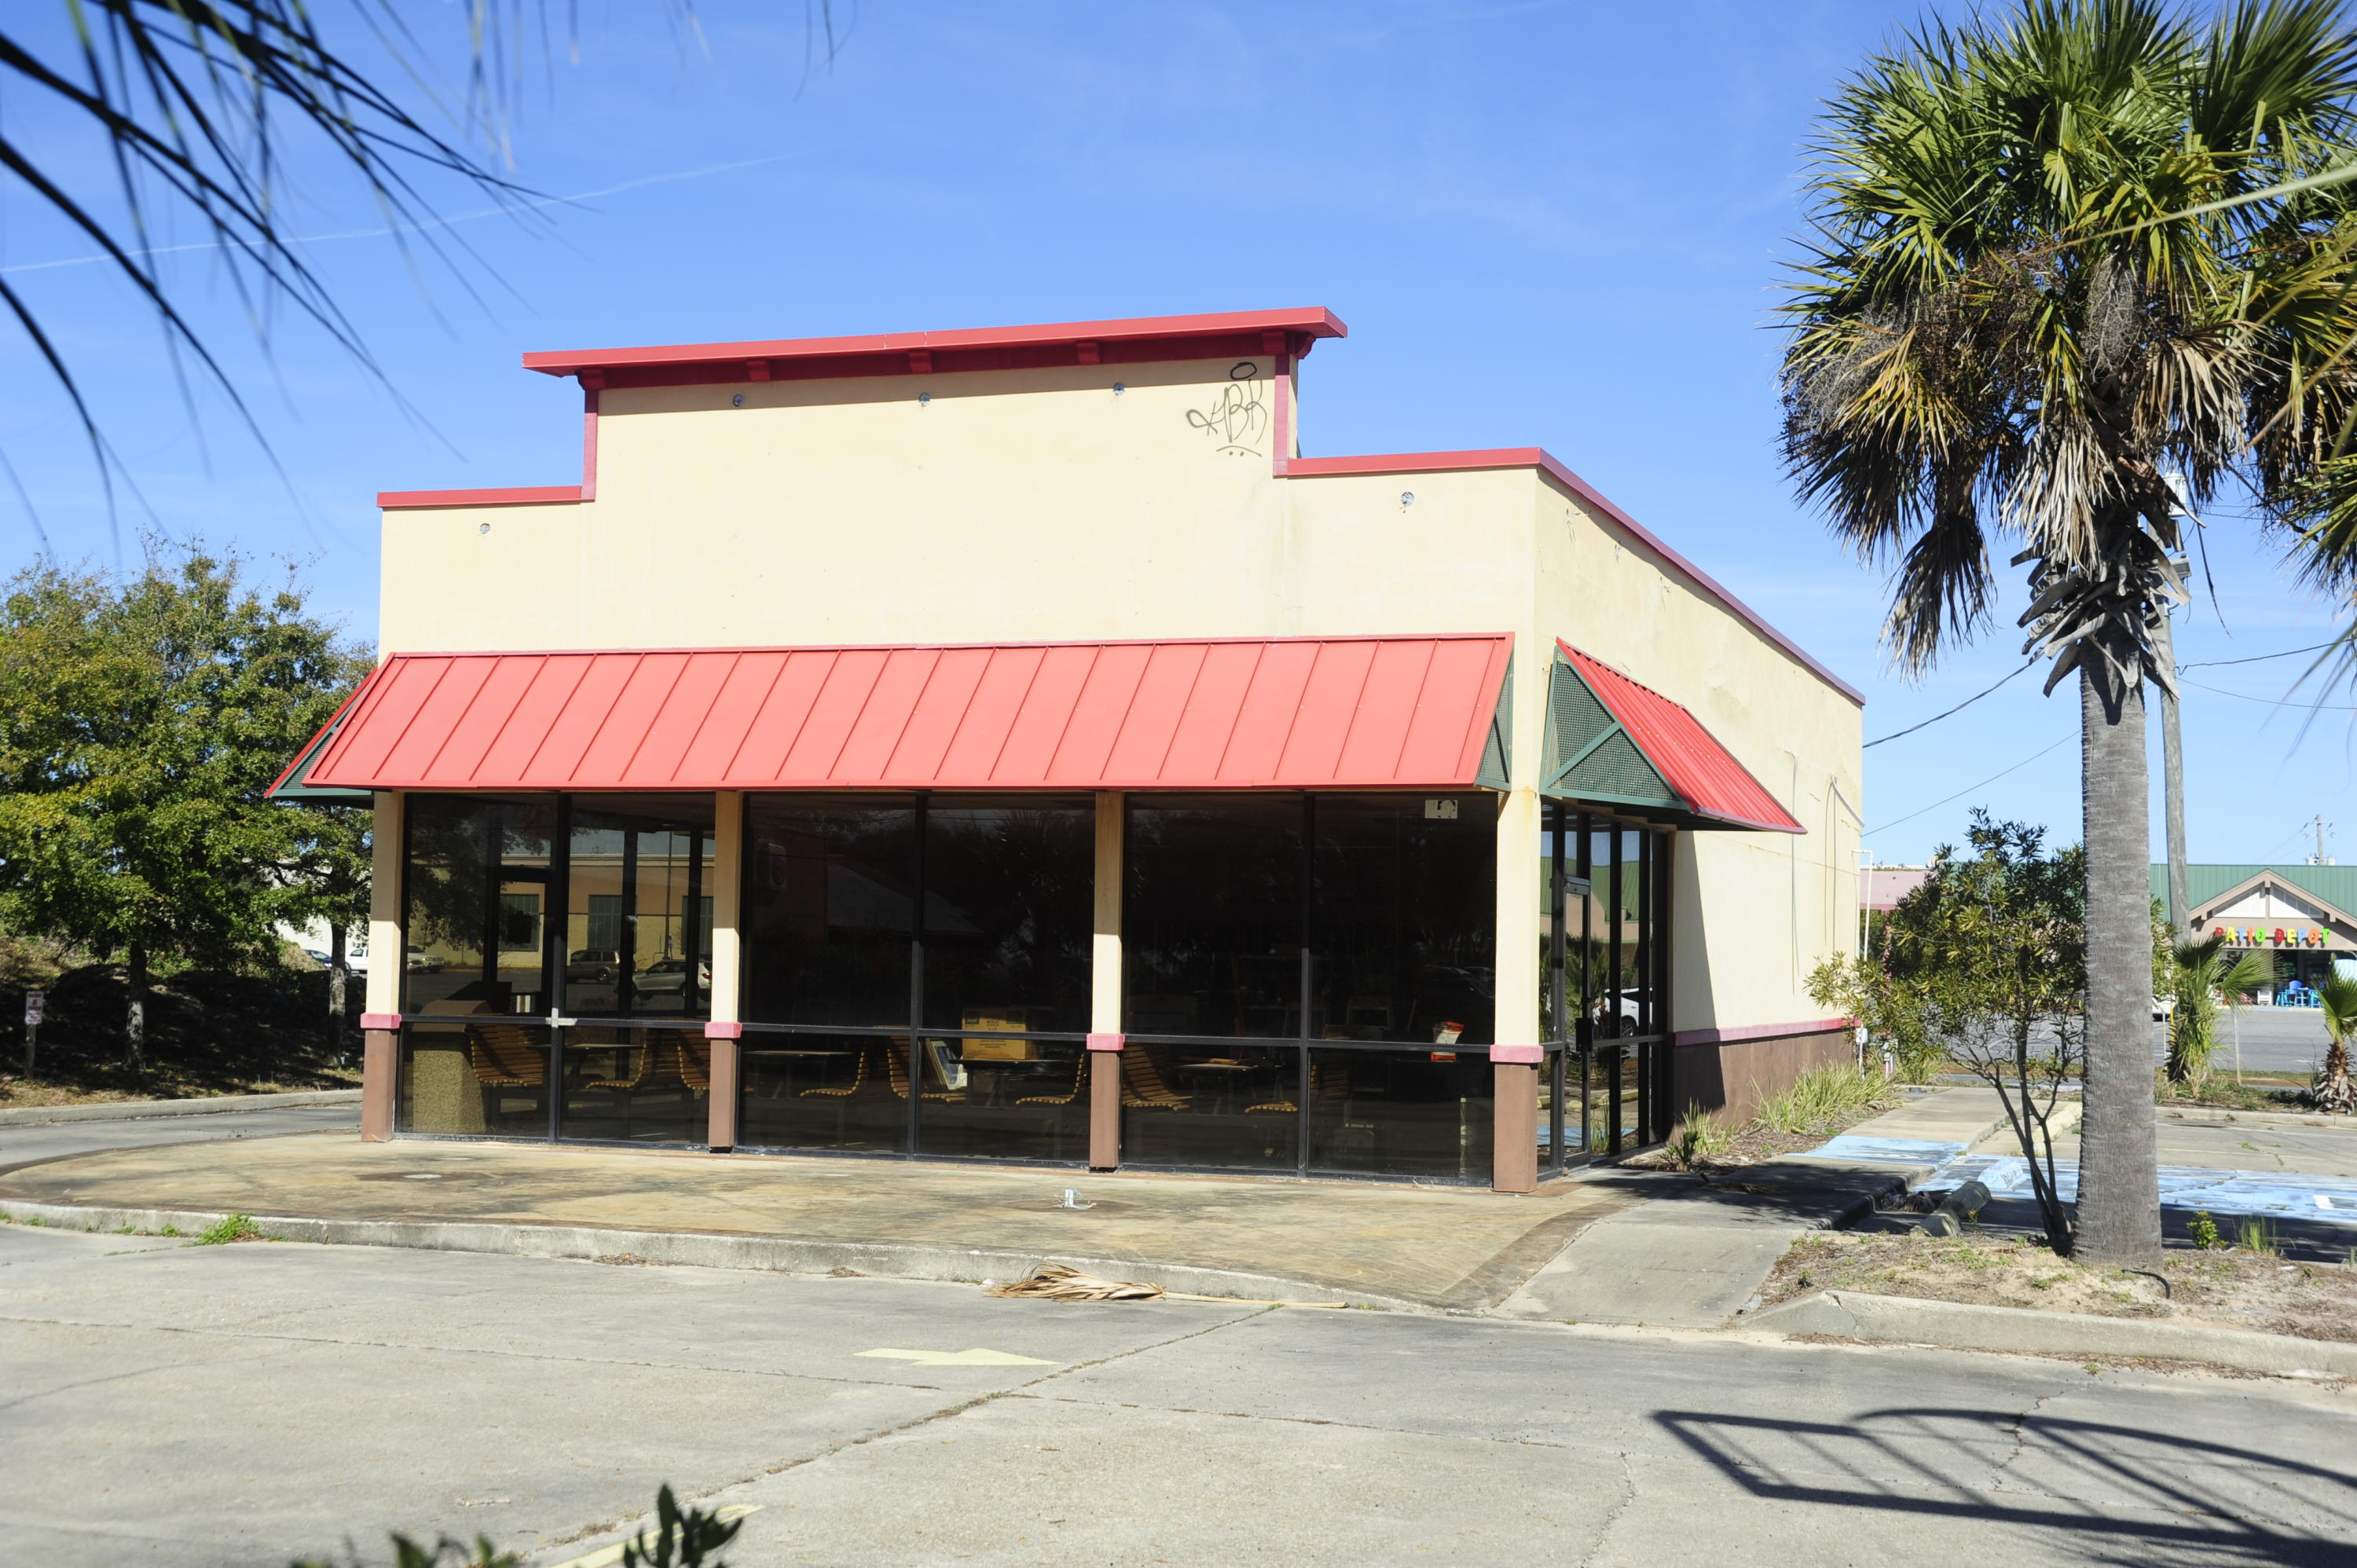 DIAMOND IN THE ROUGH!!This is a one of a kind, STAND ALONE BUILDING in Destin, with drive thru, for